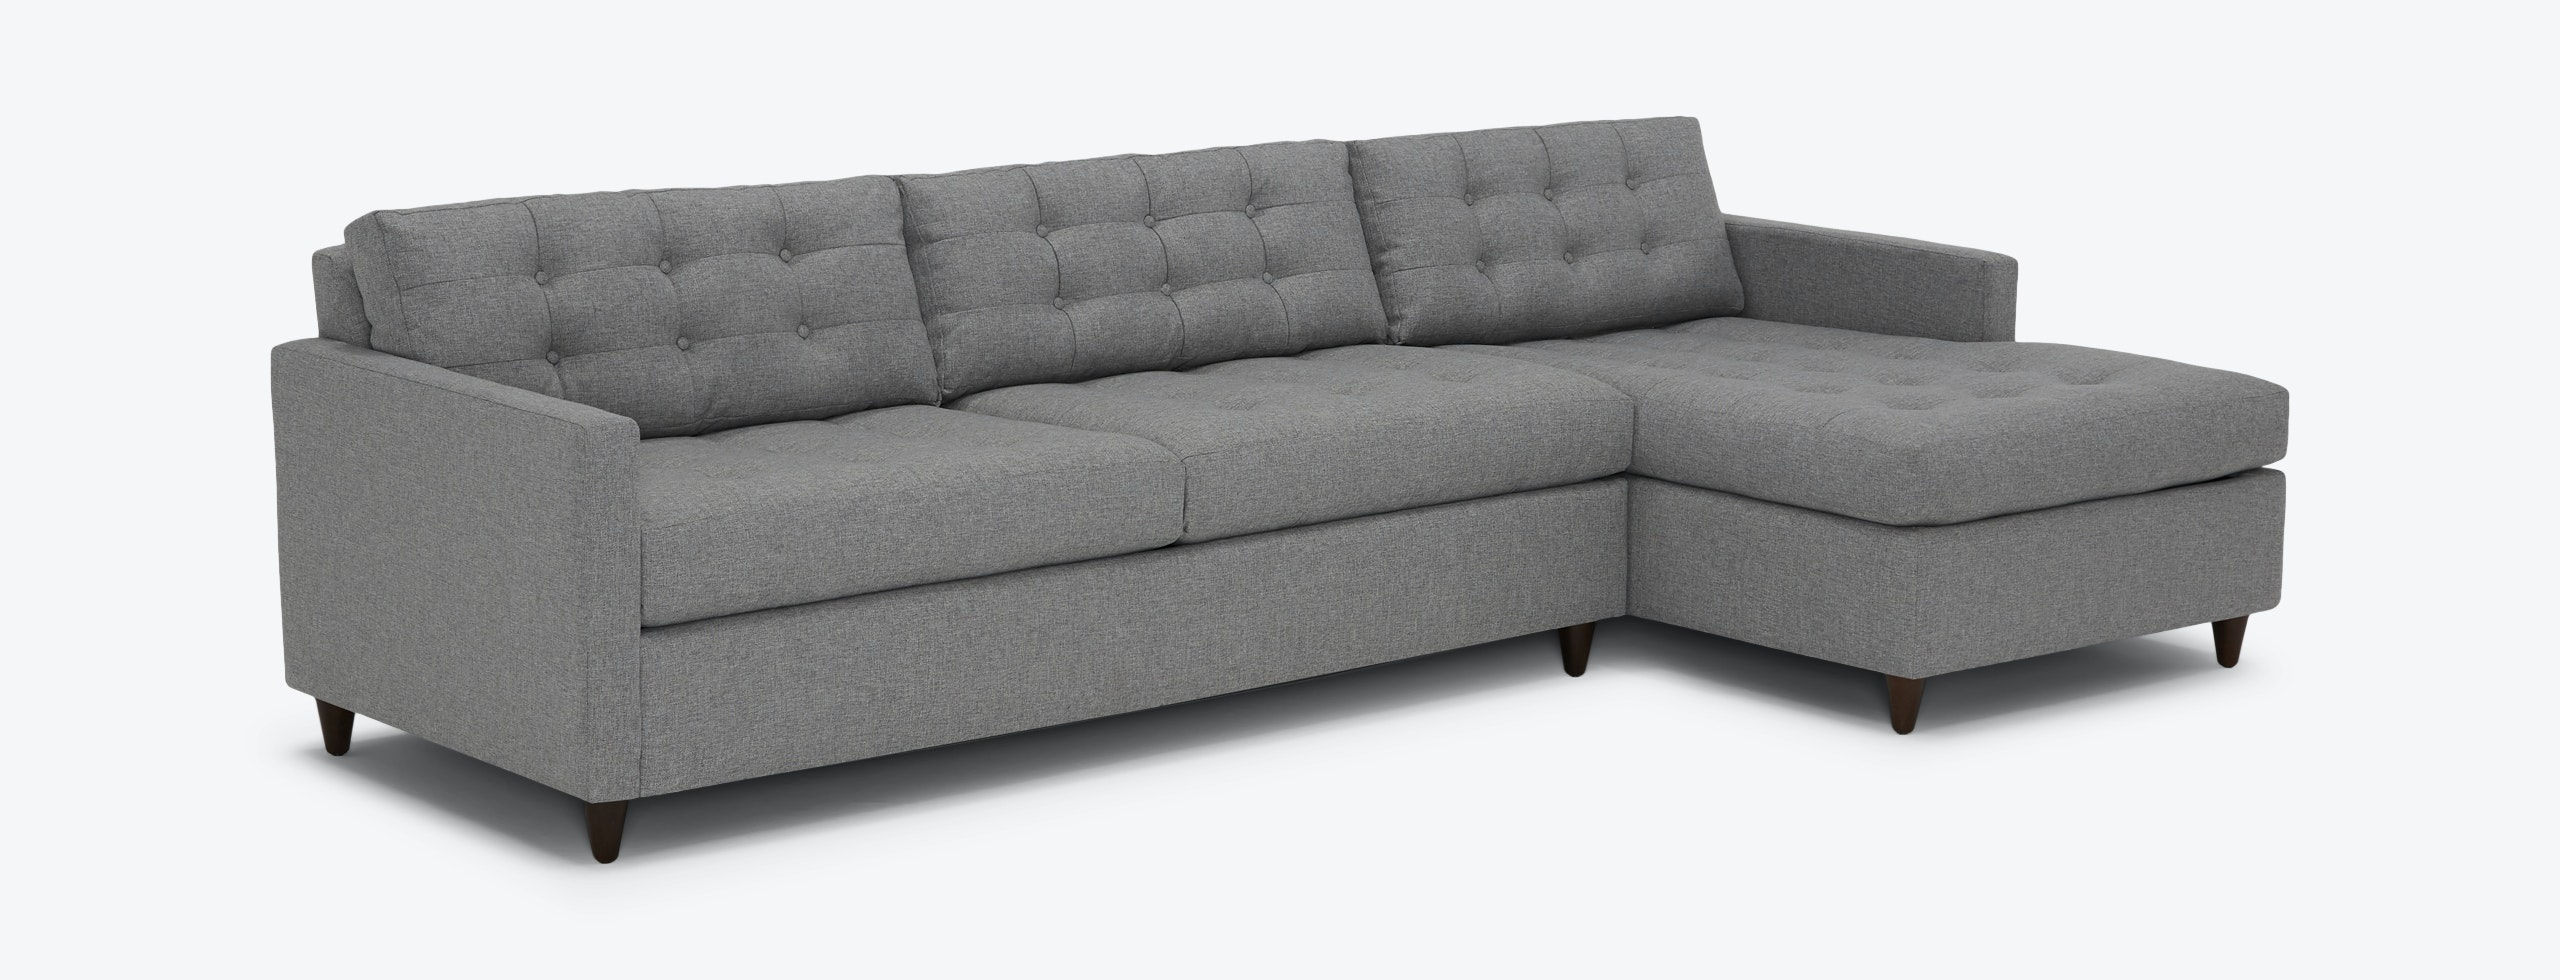 - Eliot Sleeper Sectional With Storage Joybird